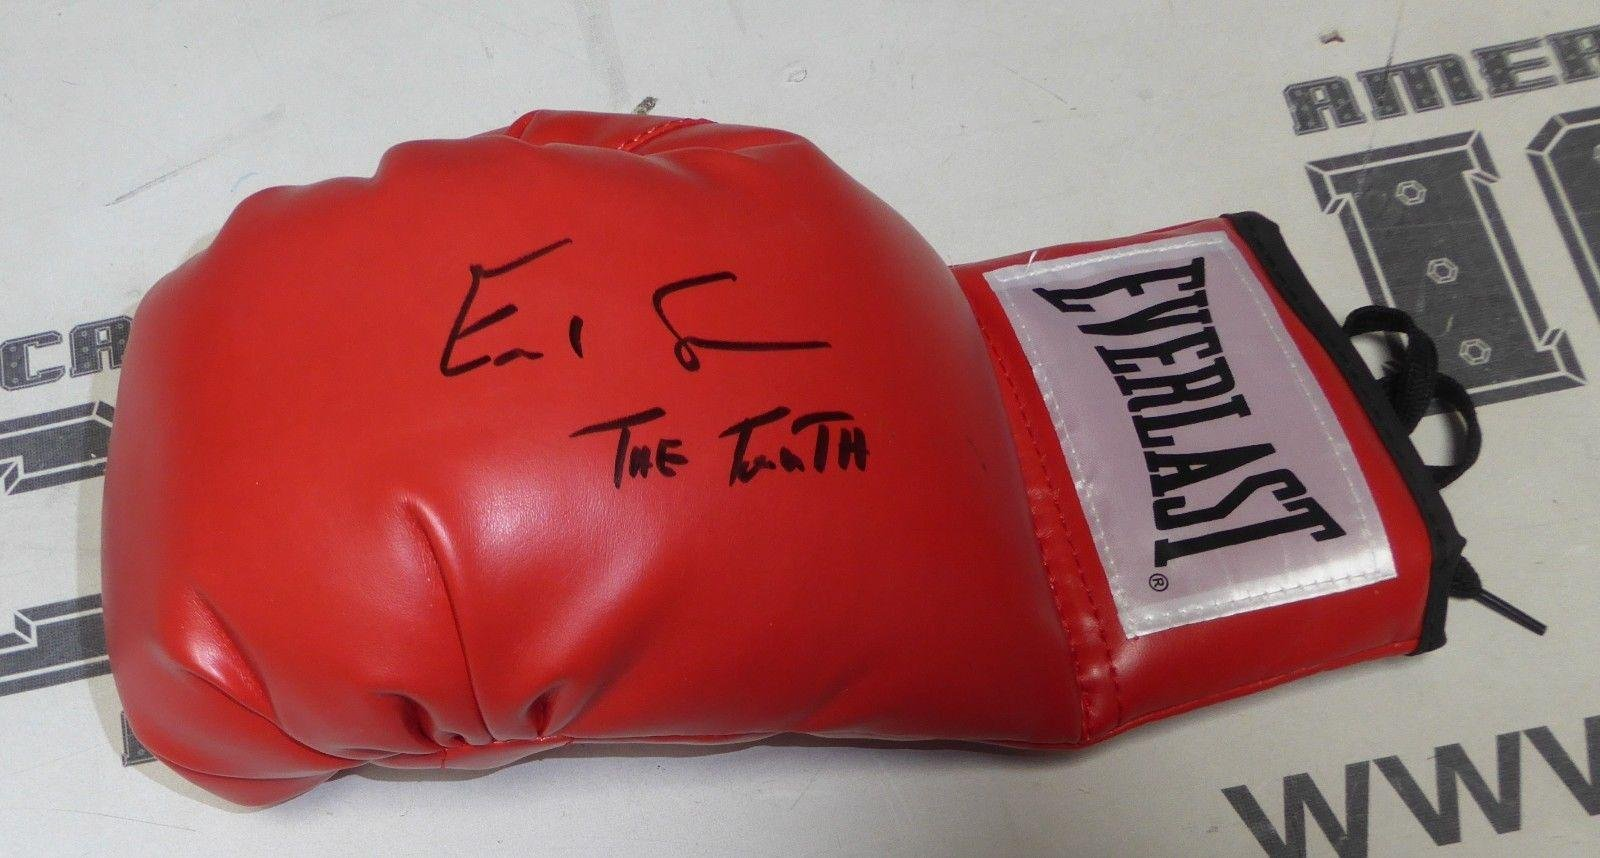 Errol Spence Jr Signed Left Everlast Boxing Glove COA Autograph Champion PSA/DNA Certified Autographed Boxing Gloves